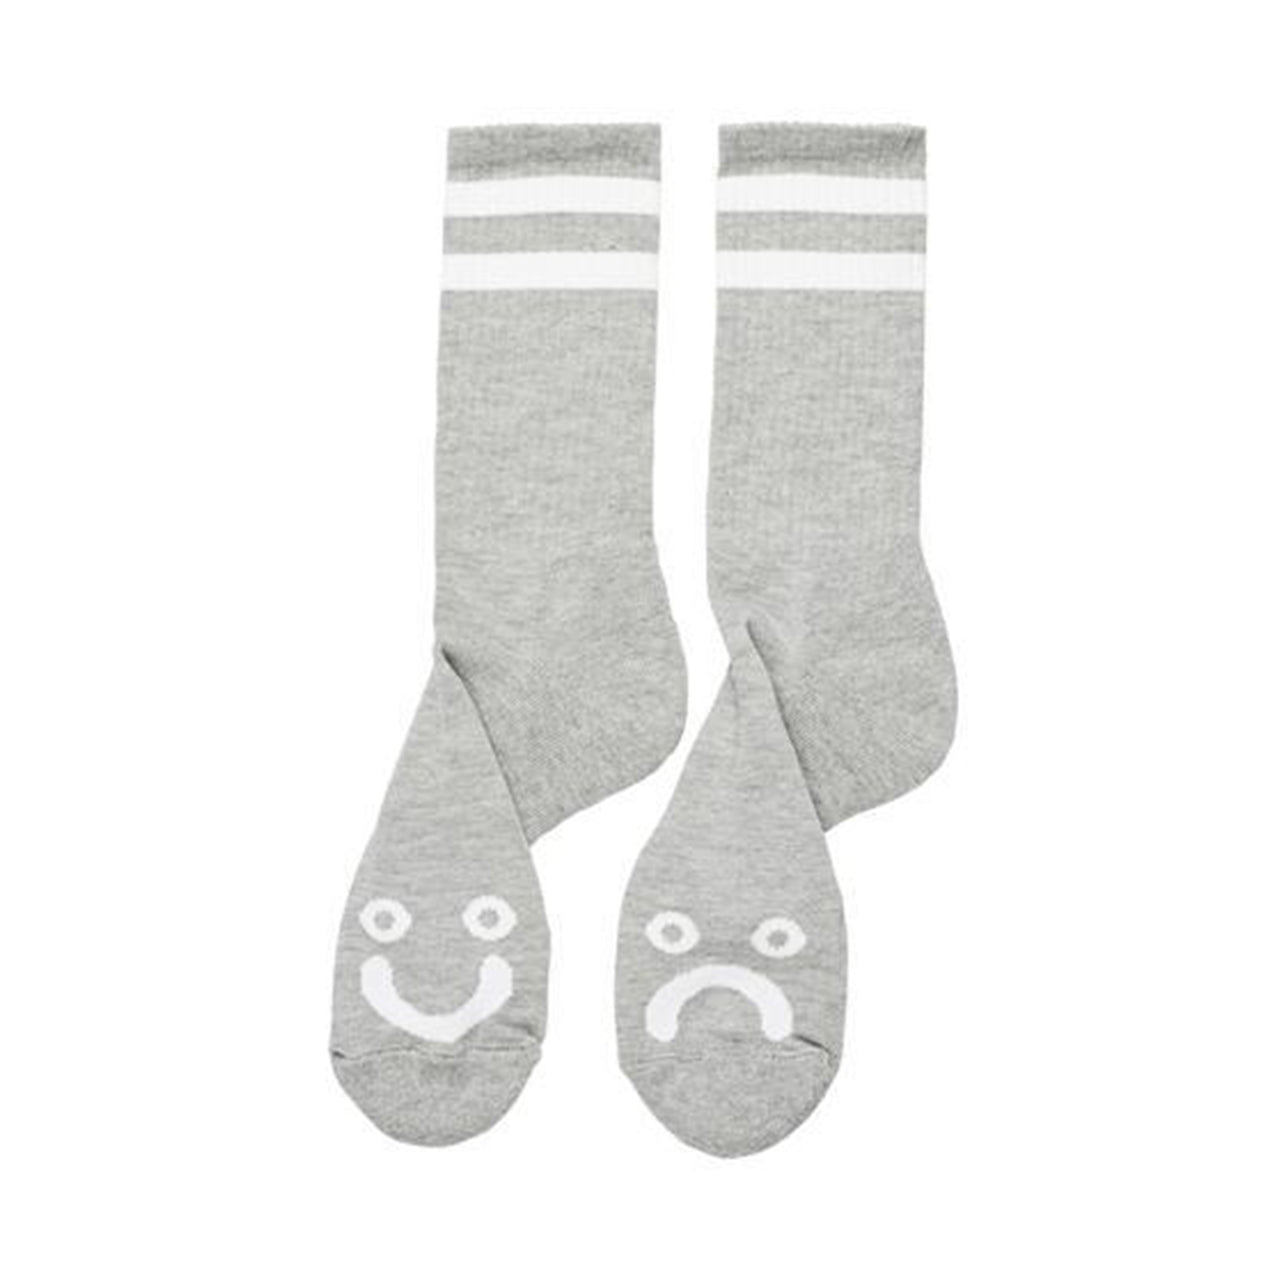 Polar - Happy Sad Socks - Grey